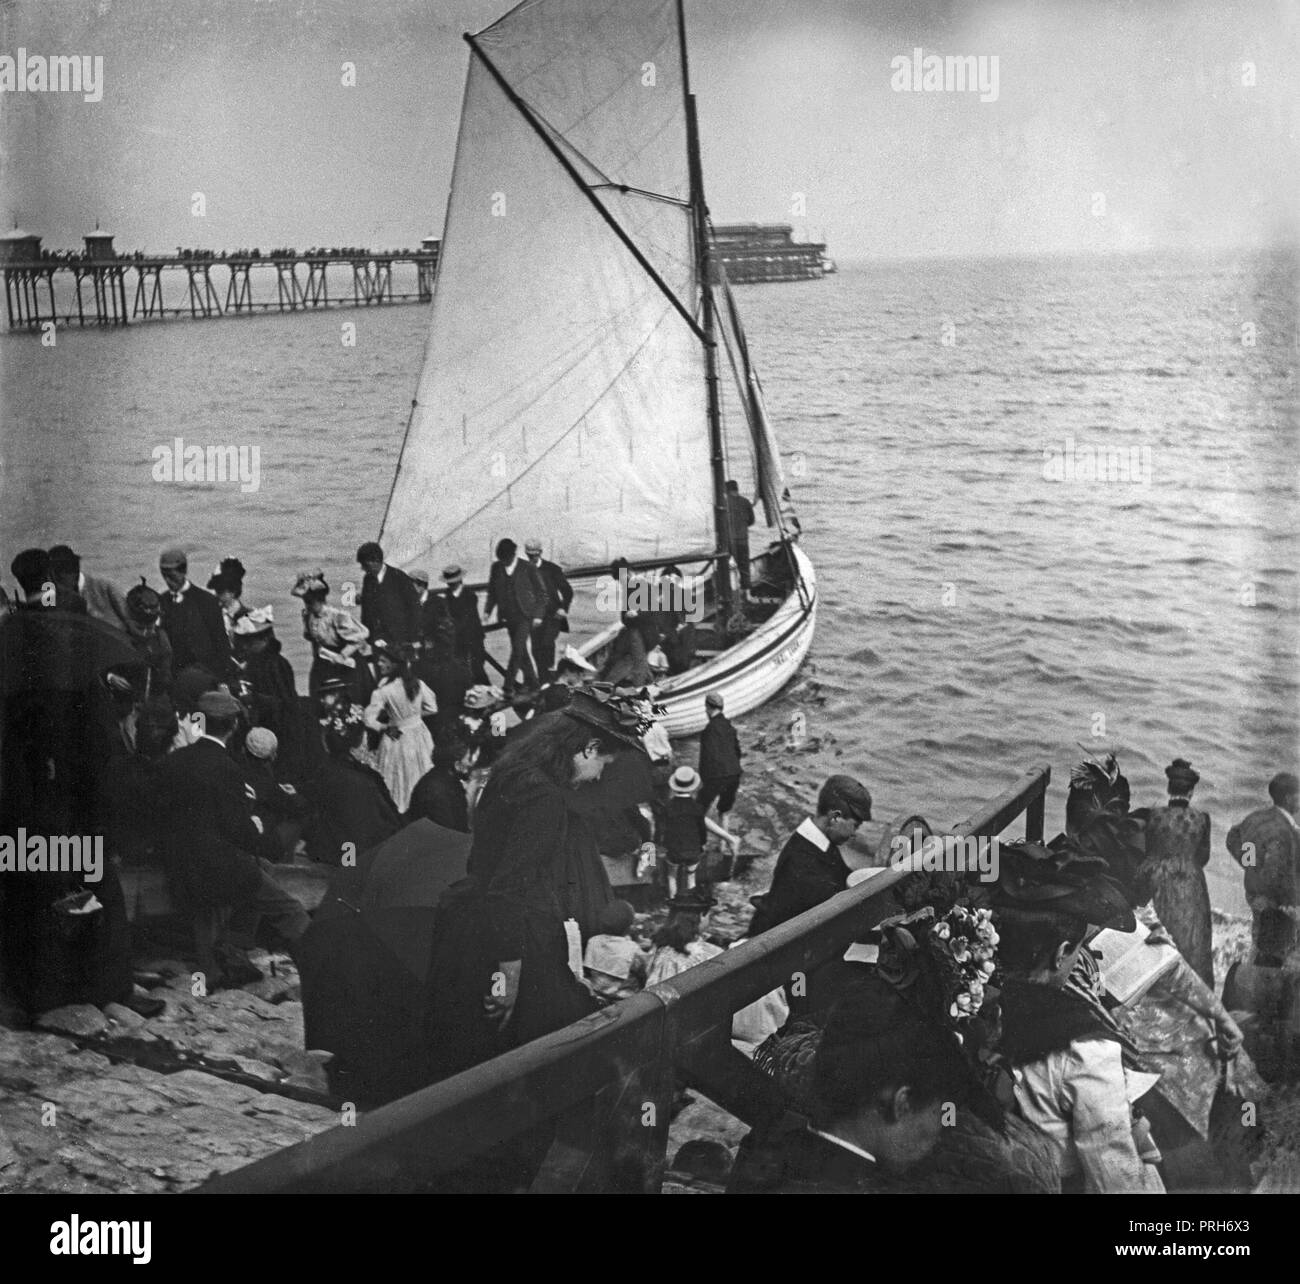 A late Victorian photograph showing groups of people, some disembarking from a small boat, and with a pier in the background, at the a seaside resort in England. - Stock Image